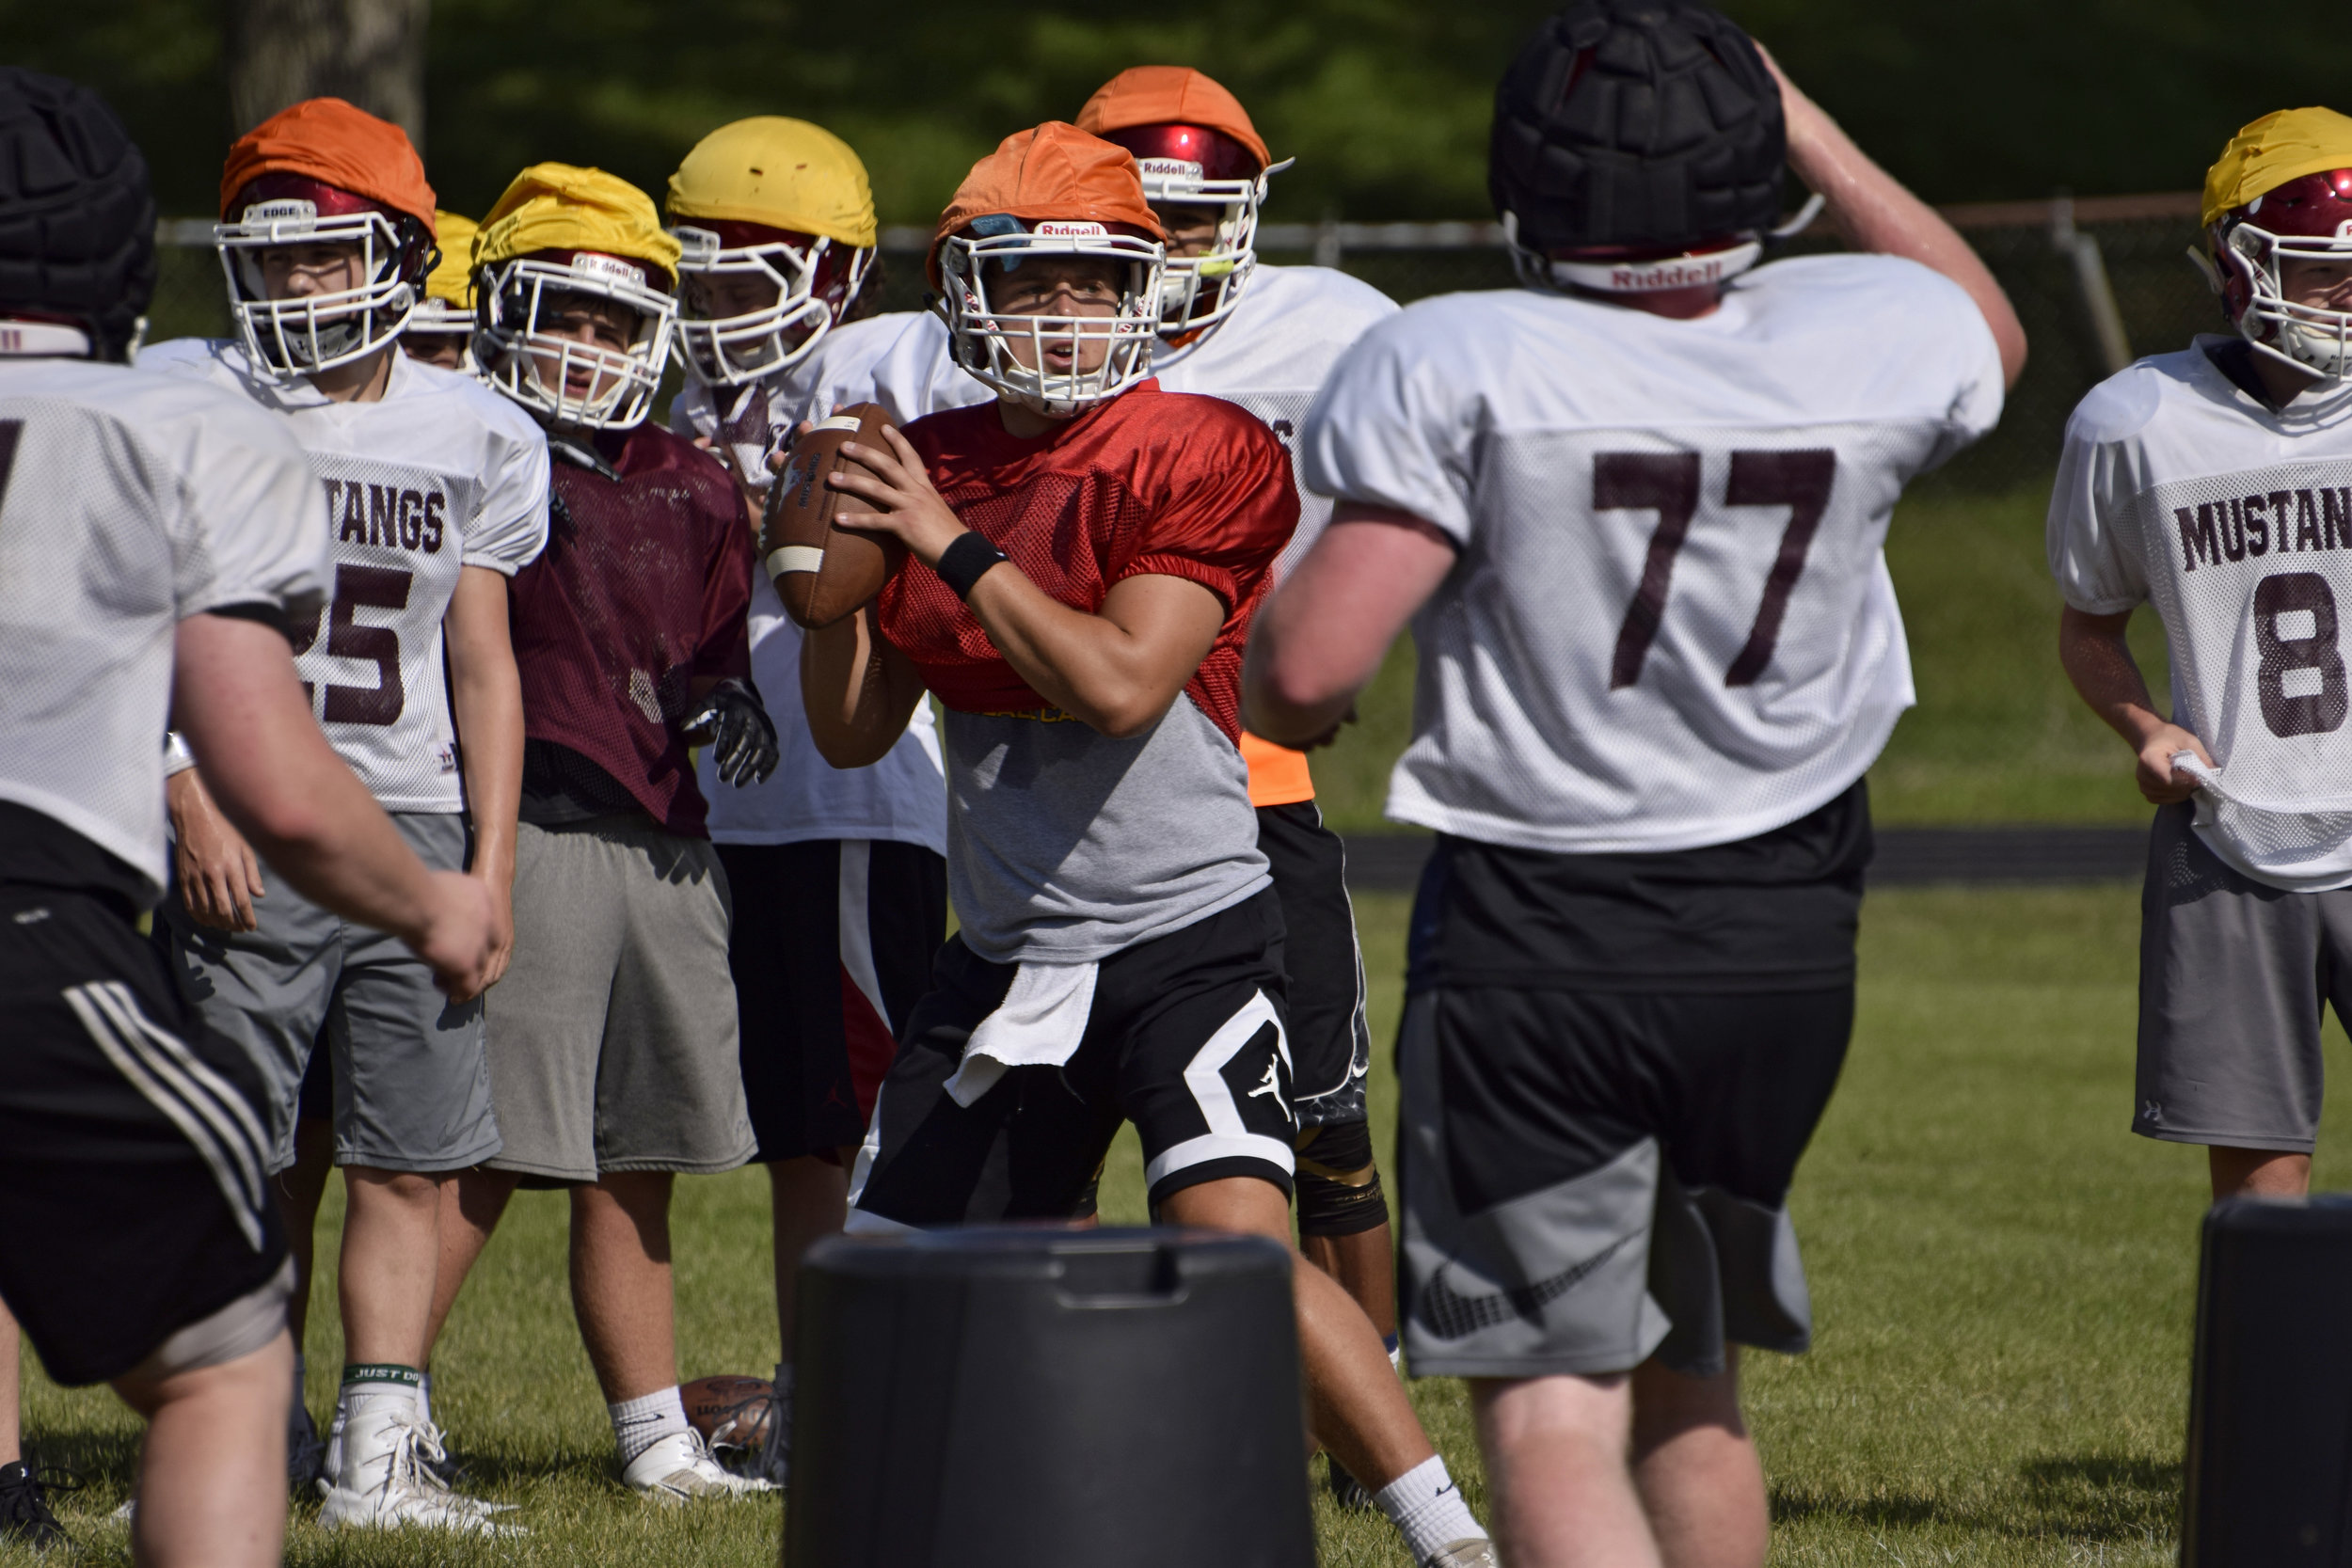 Mount Vernon quarterback Drew Adams throws the ball in a drill during a practice at Mount Vernon High School on Aug. 11. (Ryan Young/The Gazette)